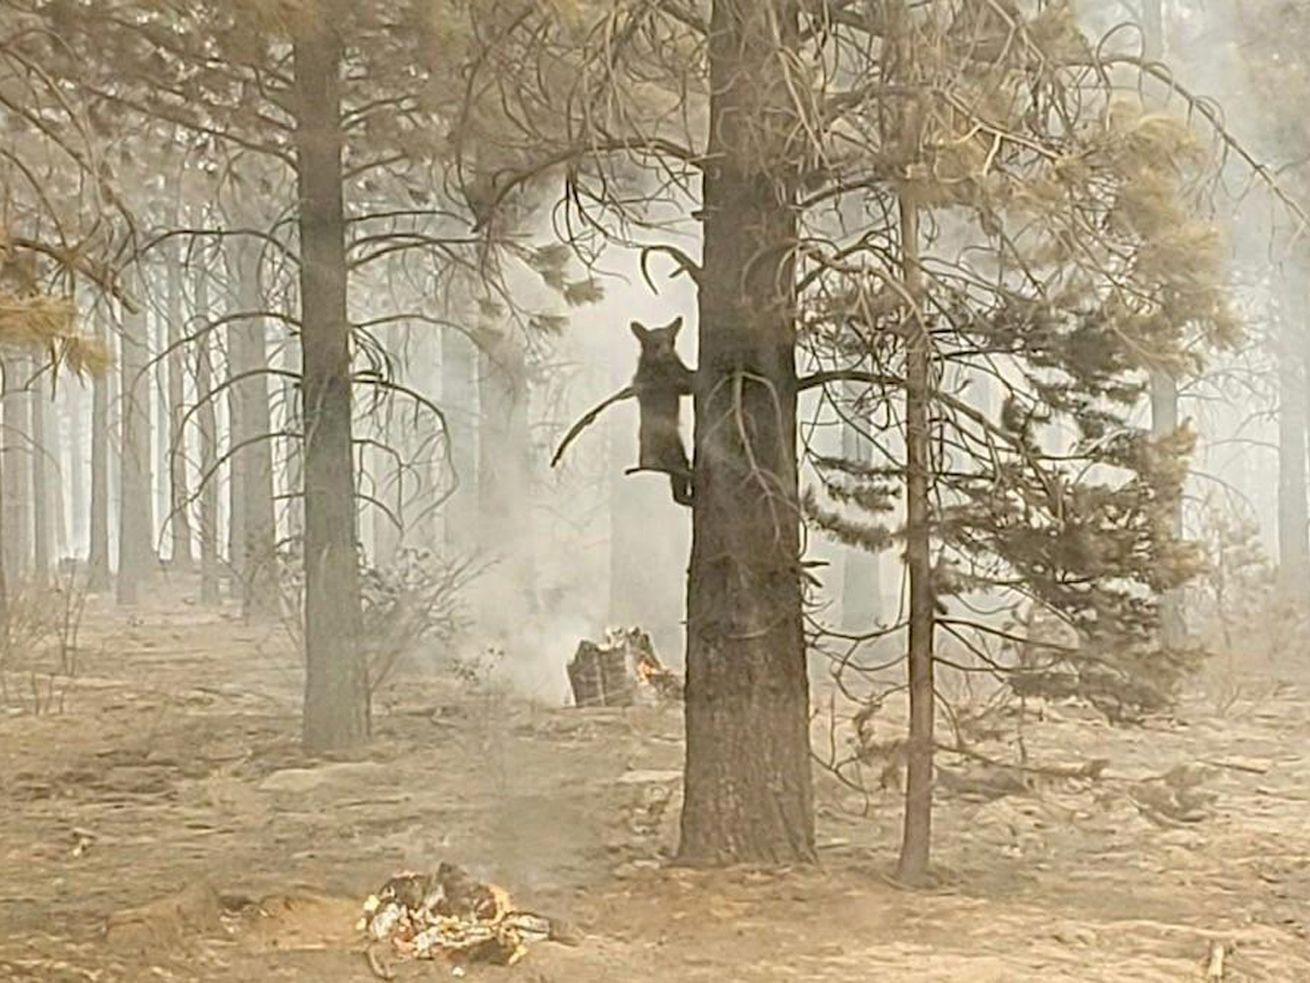 In this photo provided by the Bootleg Fire Incident Command, a bear cub clings to a tree after being spotted by a safety officer at the Bootleg Fire in southern Oregon, Sunday, July 18, 2021. As more fire personnel moved into the area, the cub scurried down the tree trunk and later left after being offered water.  Smoke and ash from the wildfires have drifted thousands of miles, reaching as far as New York. In Chicago, a blanket of thick haze covered the sky and turned it milky white.